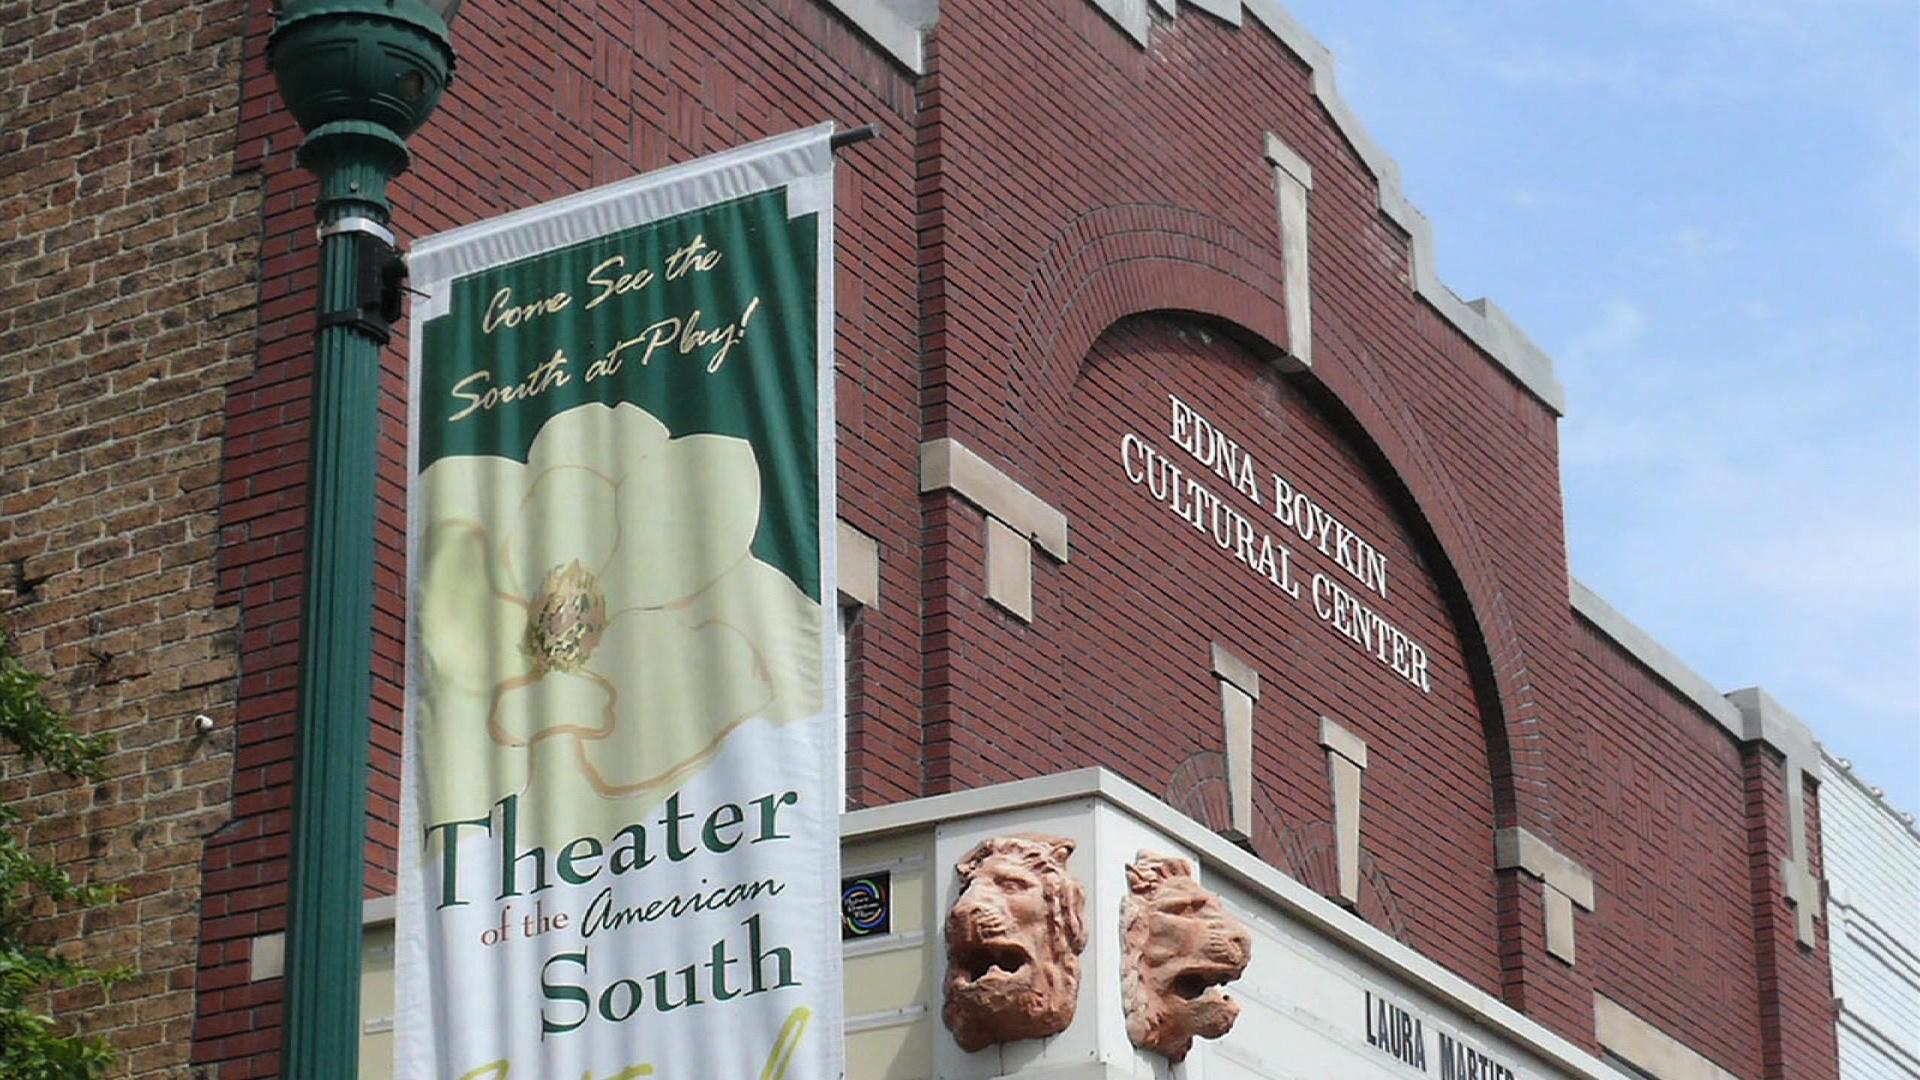 Theater of the American South Festival image